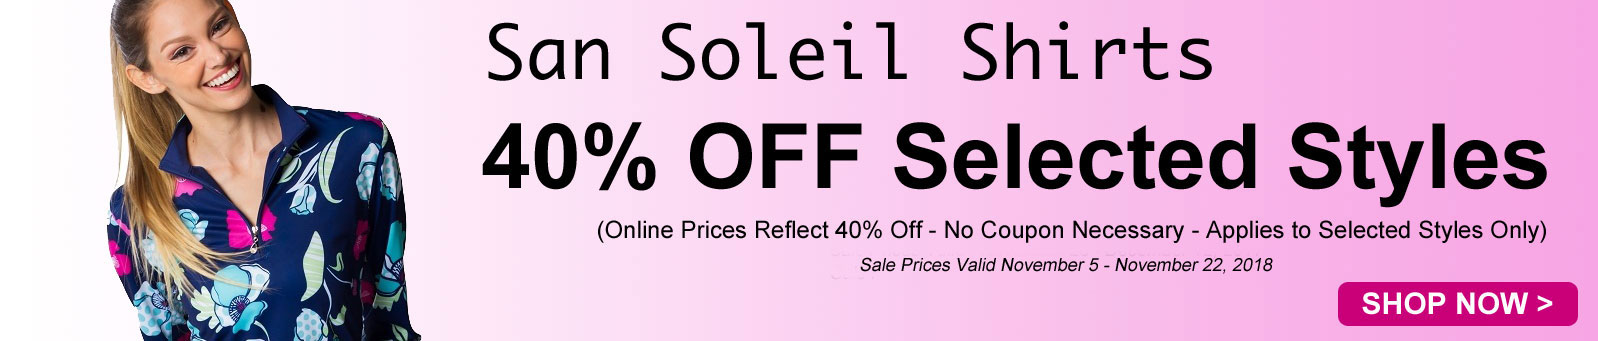 Ladies & Plus Size San Soleil Specials